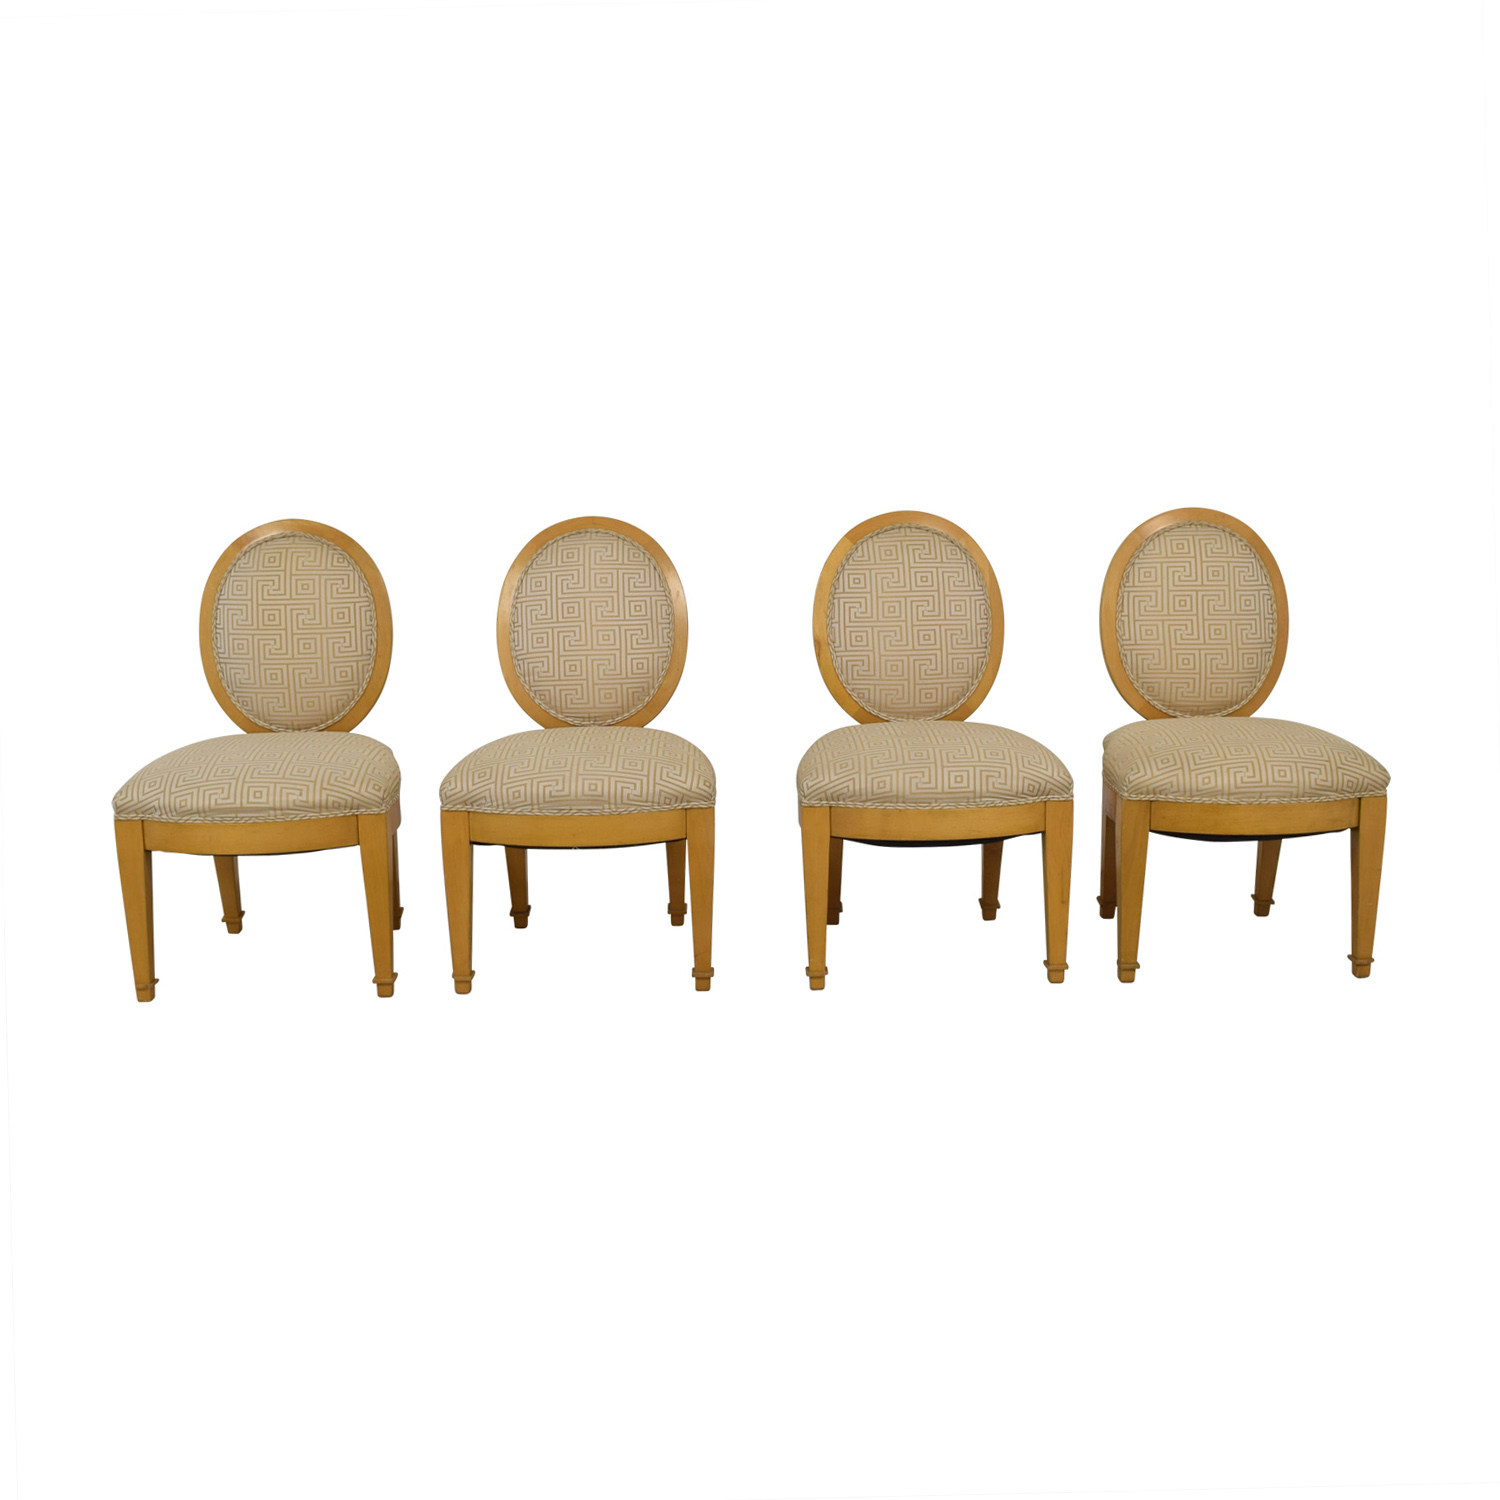 shop Furniture Masters Tan and Beige Upholstered Dining Chairs Furniture Masters Chairs